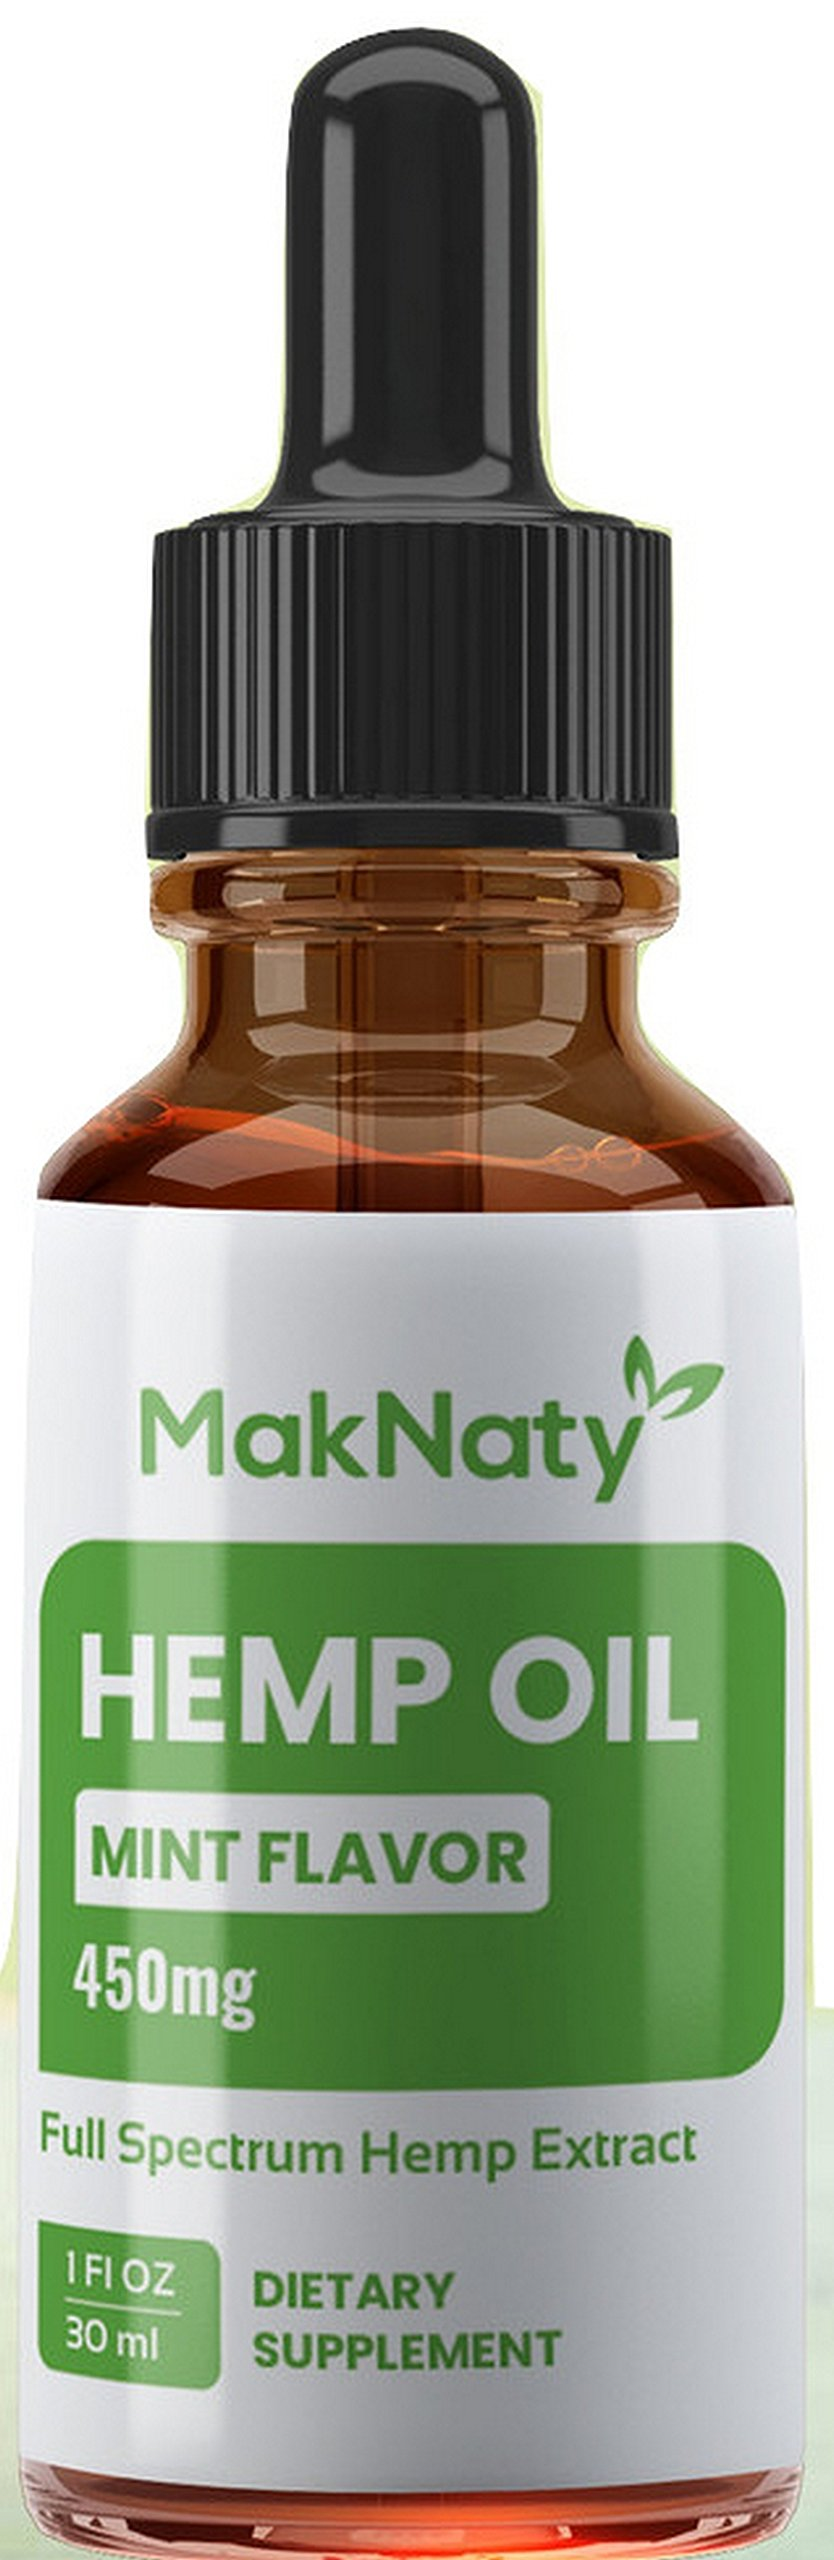 Natural Organic Hemp Seed Extract Oil 450 mg 1 Fl oz.(30ml) Mint Flavor Full Spectrum Rich in Omega 3,6 & 9 Fatty Acids Anti Inflammation by MakNaty